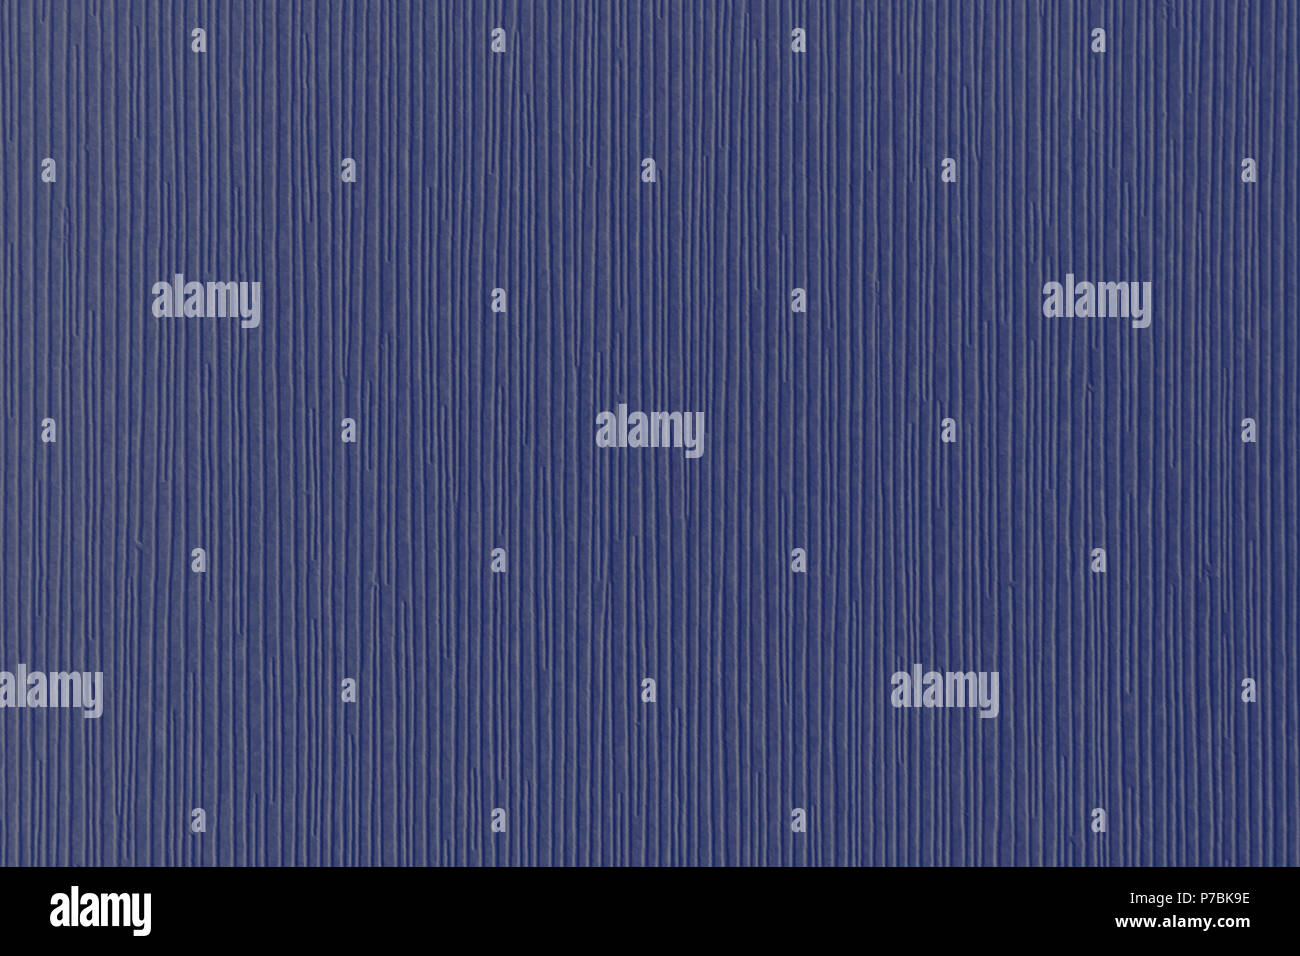 Navy-blue textured corrugated striped wallpaper background - Stock Image